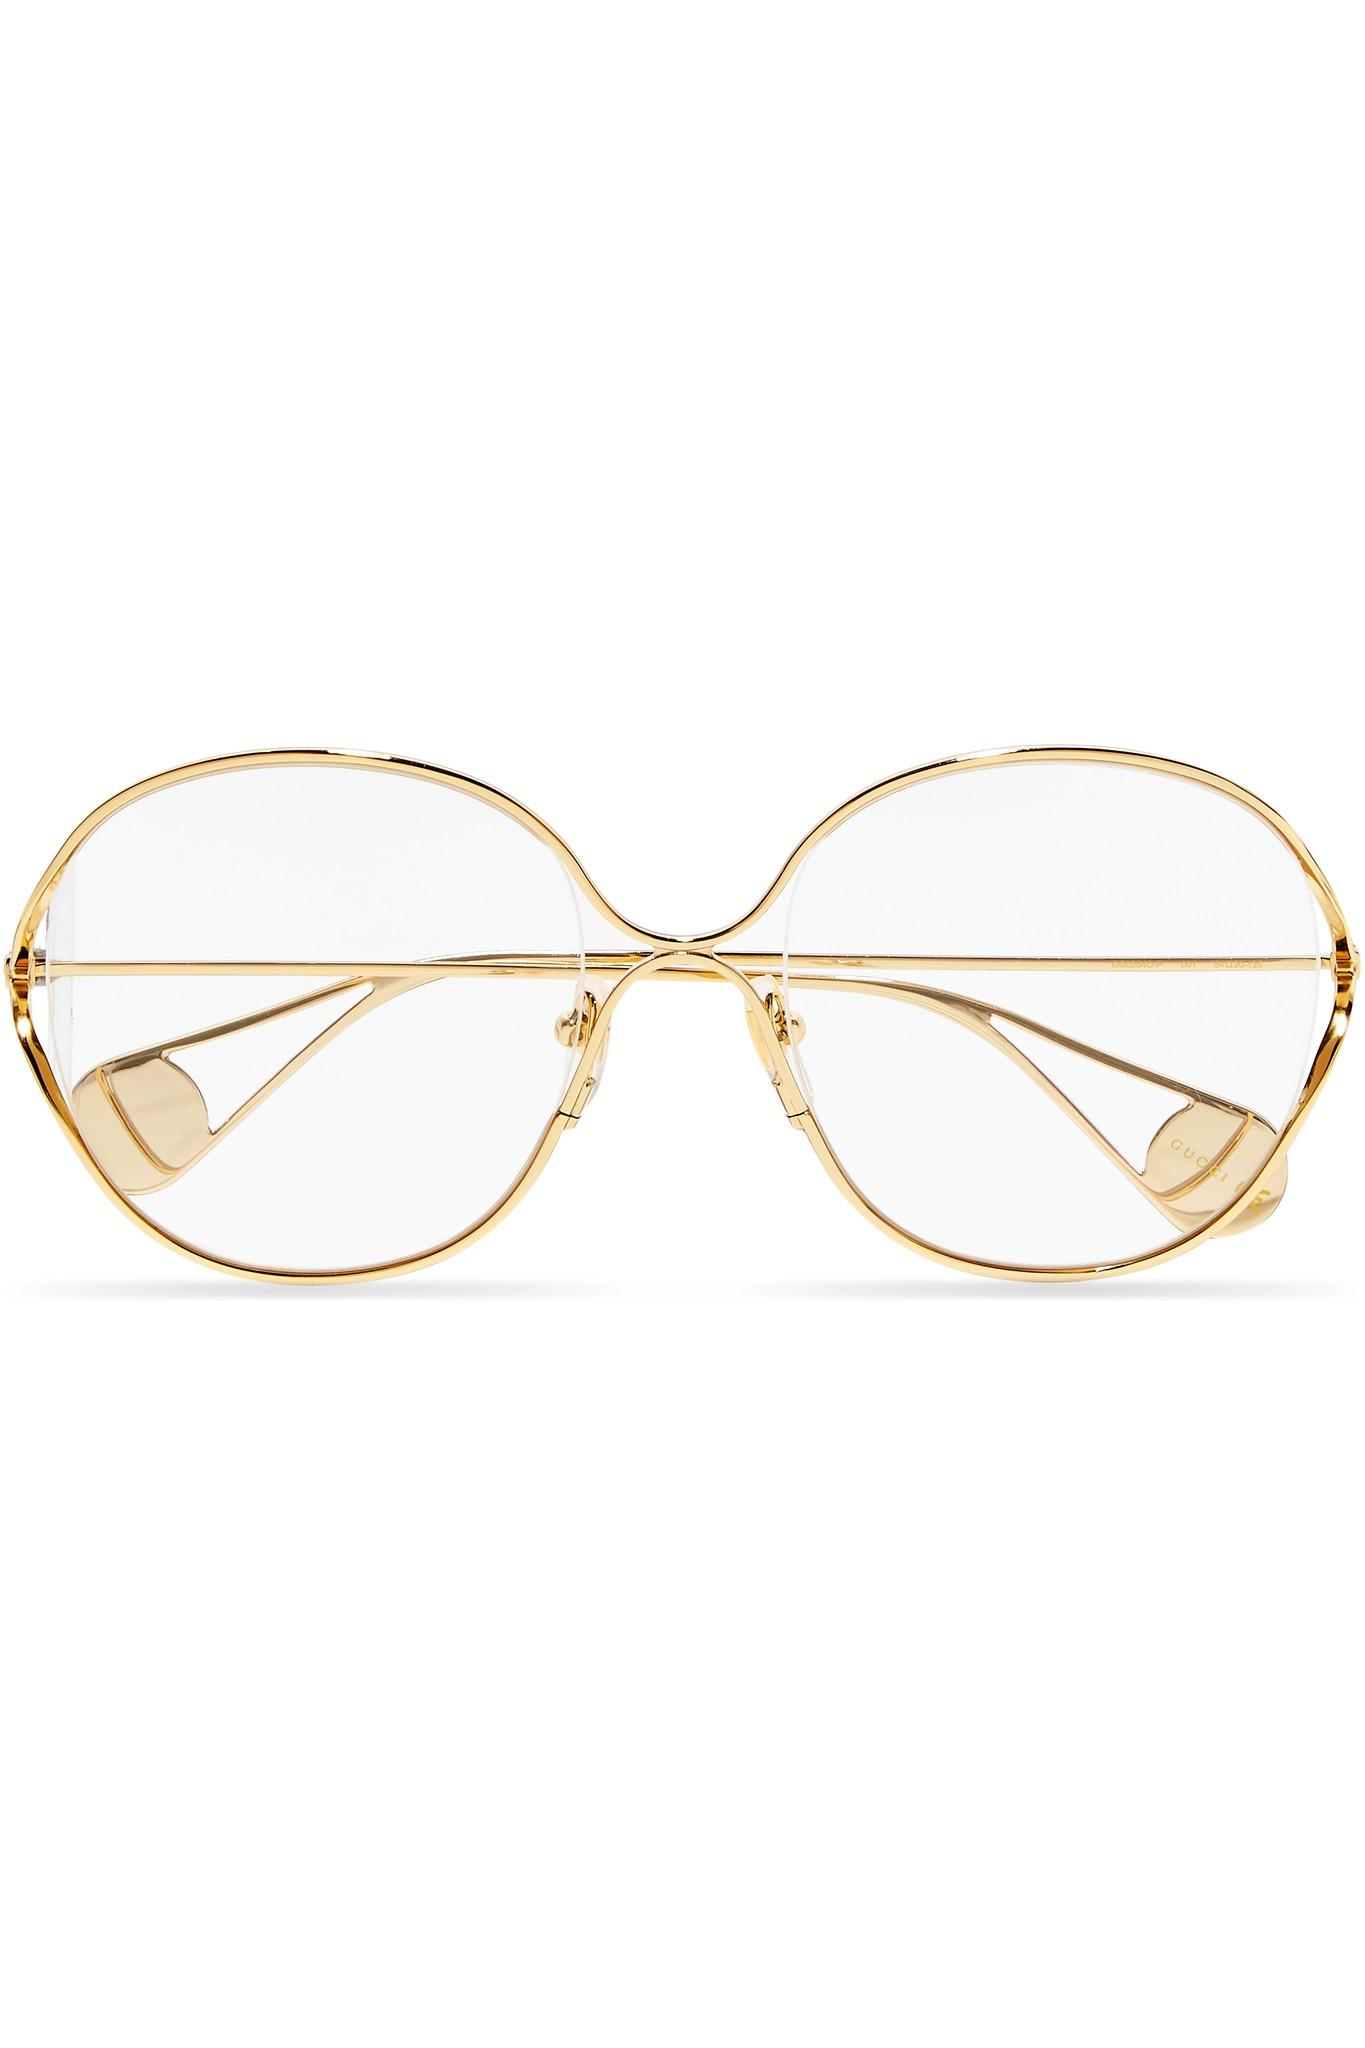 e1a655c352d Lyst - Gucci Round-frame Gold-tone Optical Glasses in Metallic